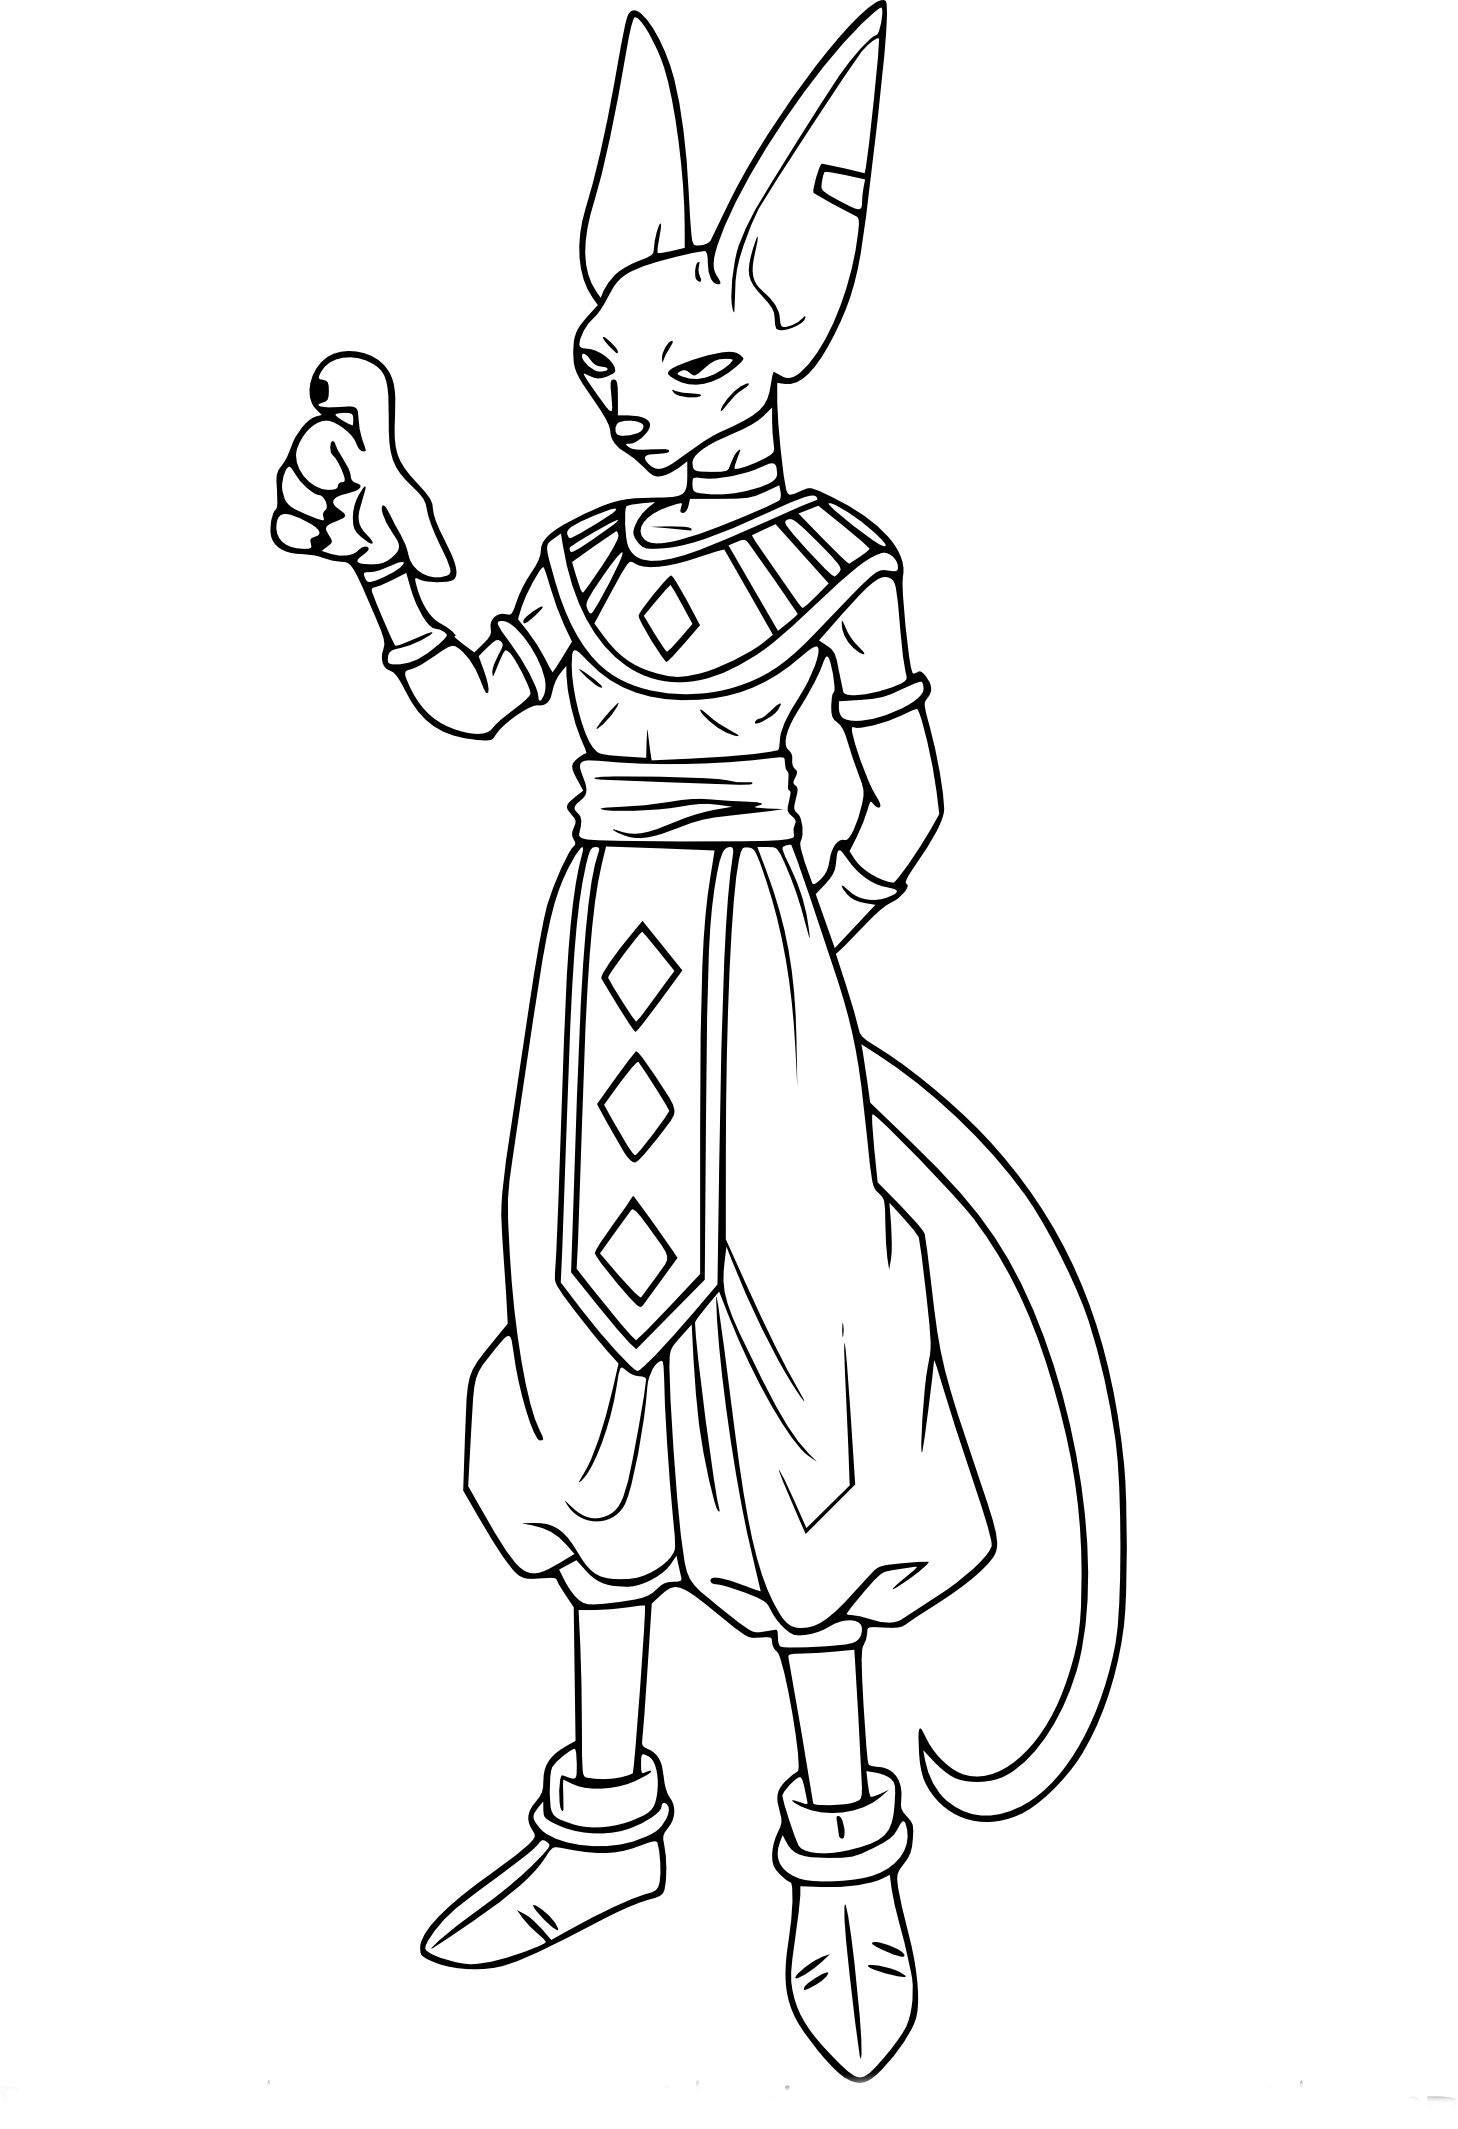 dragon ball z beerus coloring pages lord beerus god of destruction blocking lineart by z ball dragon pages beerus coloring